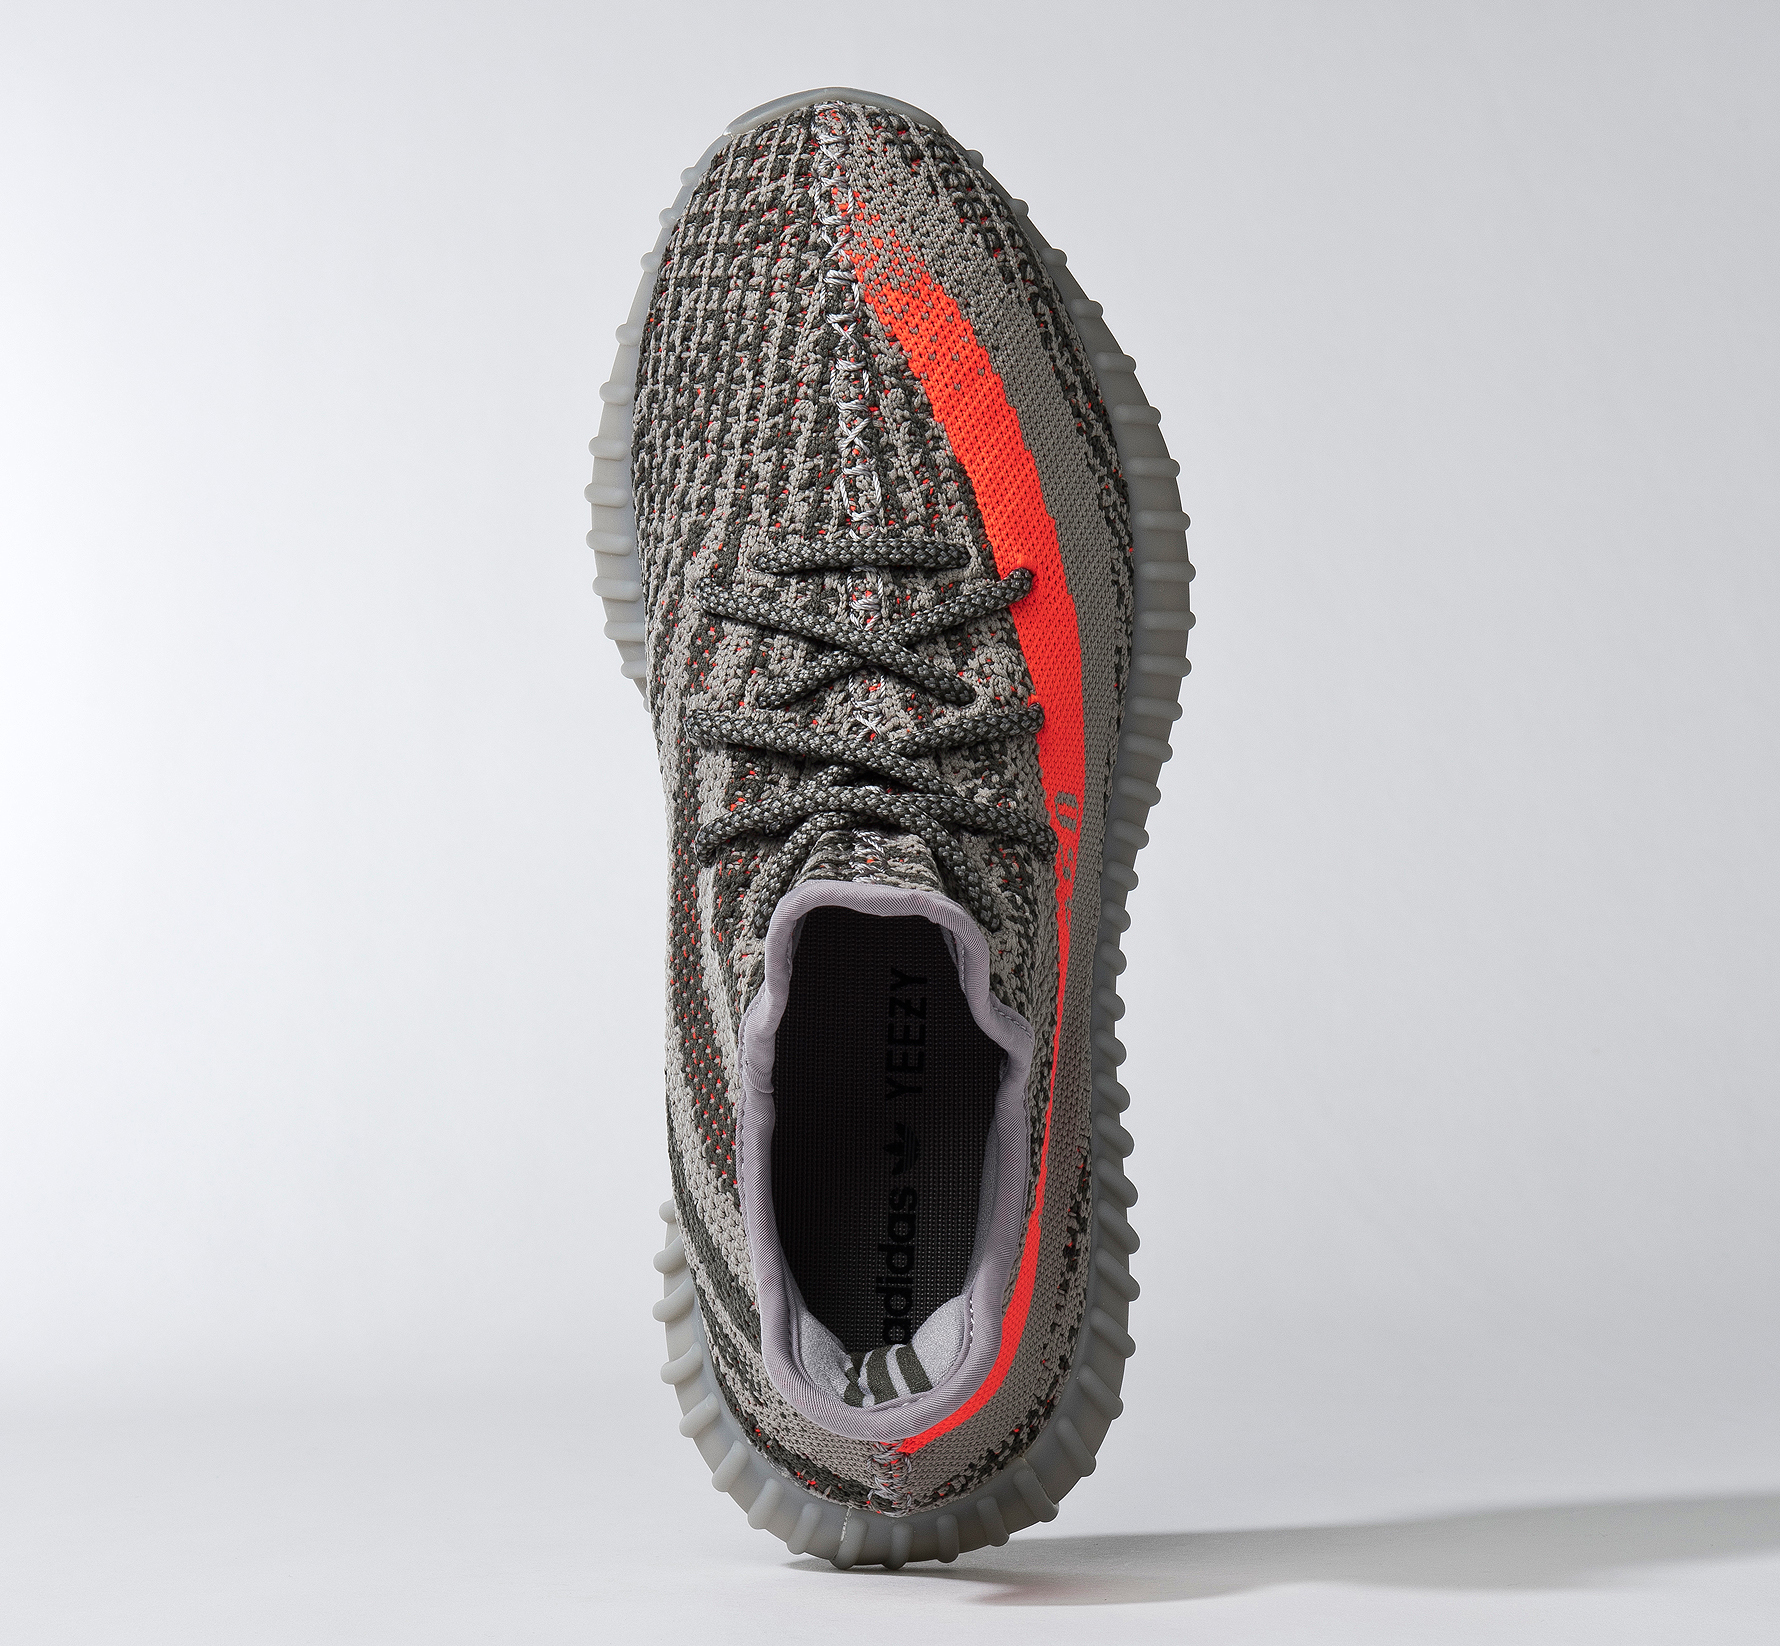 Cheap Adidas yeezy 350 boost v2 Beluga Sz 11 In Hand Ready To Ship